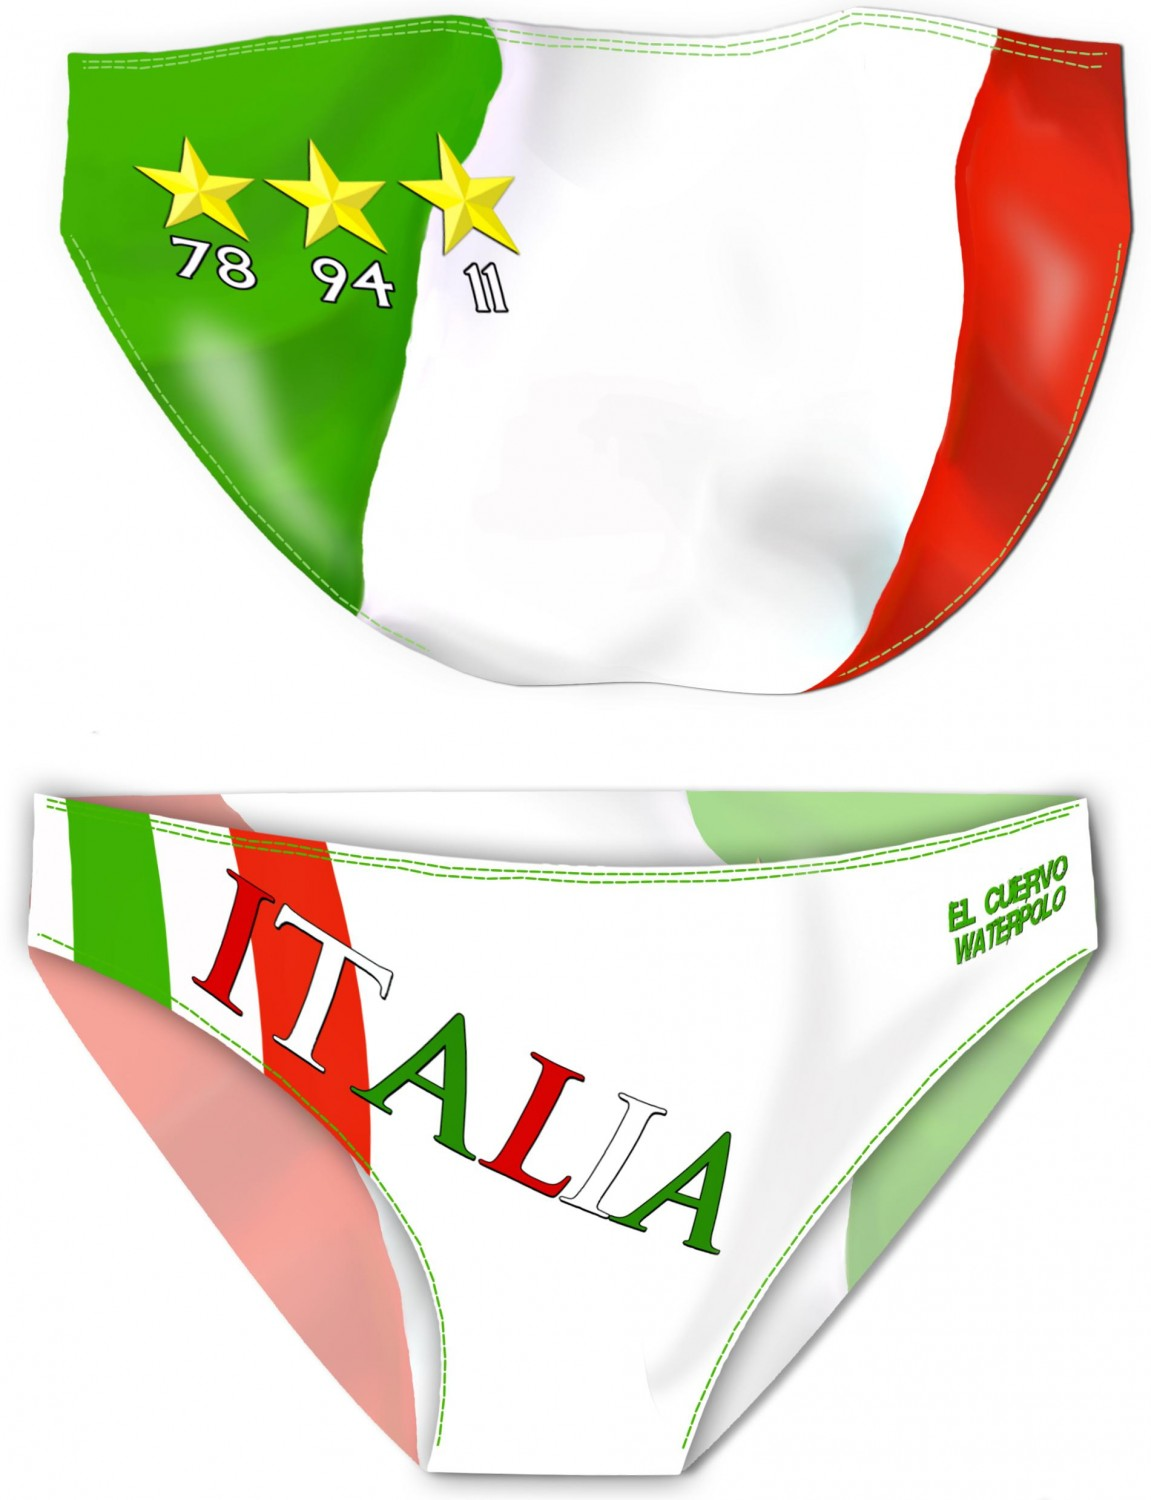 SL ITALIA WP CHAMP 2